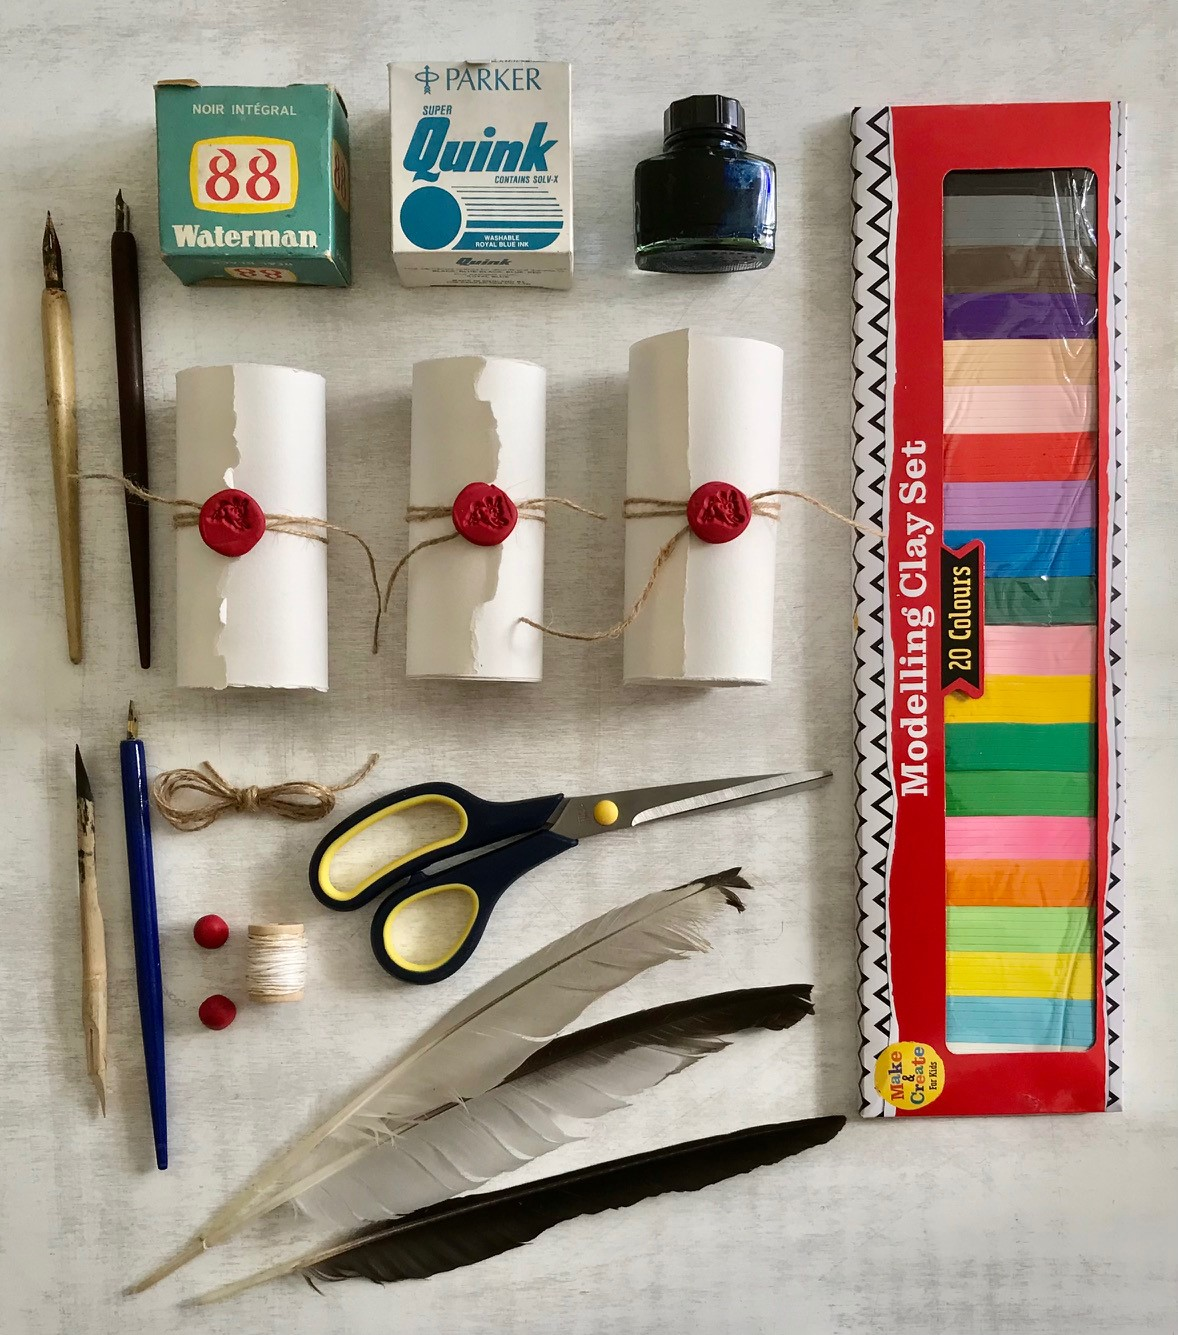 Colour photo showing ink, scrolls, quills and scissors.